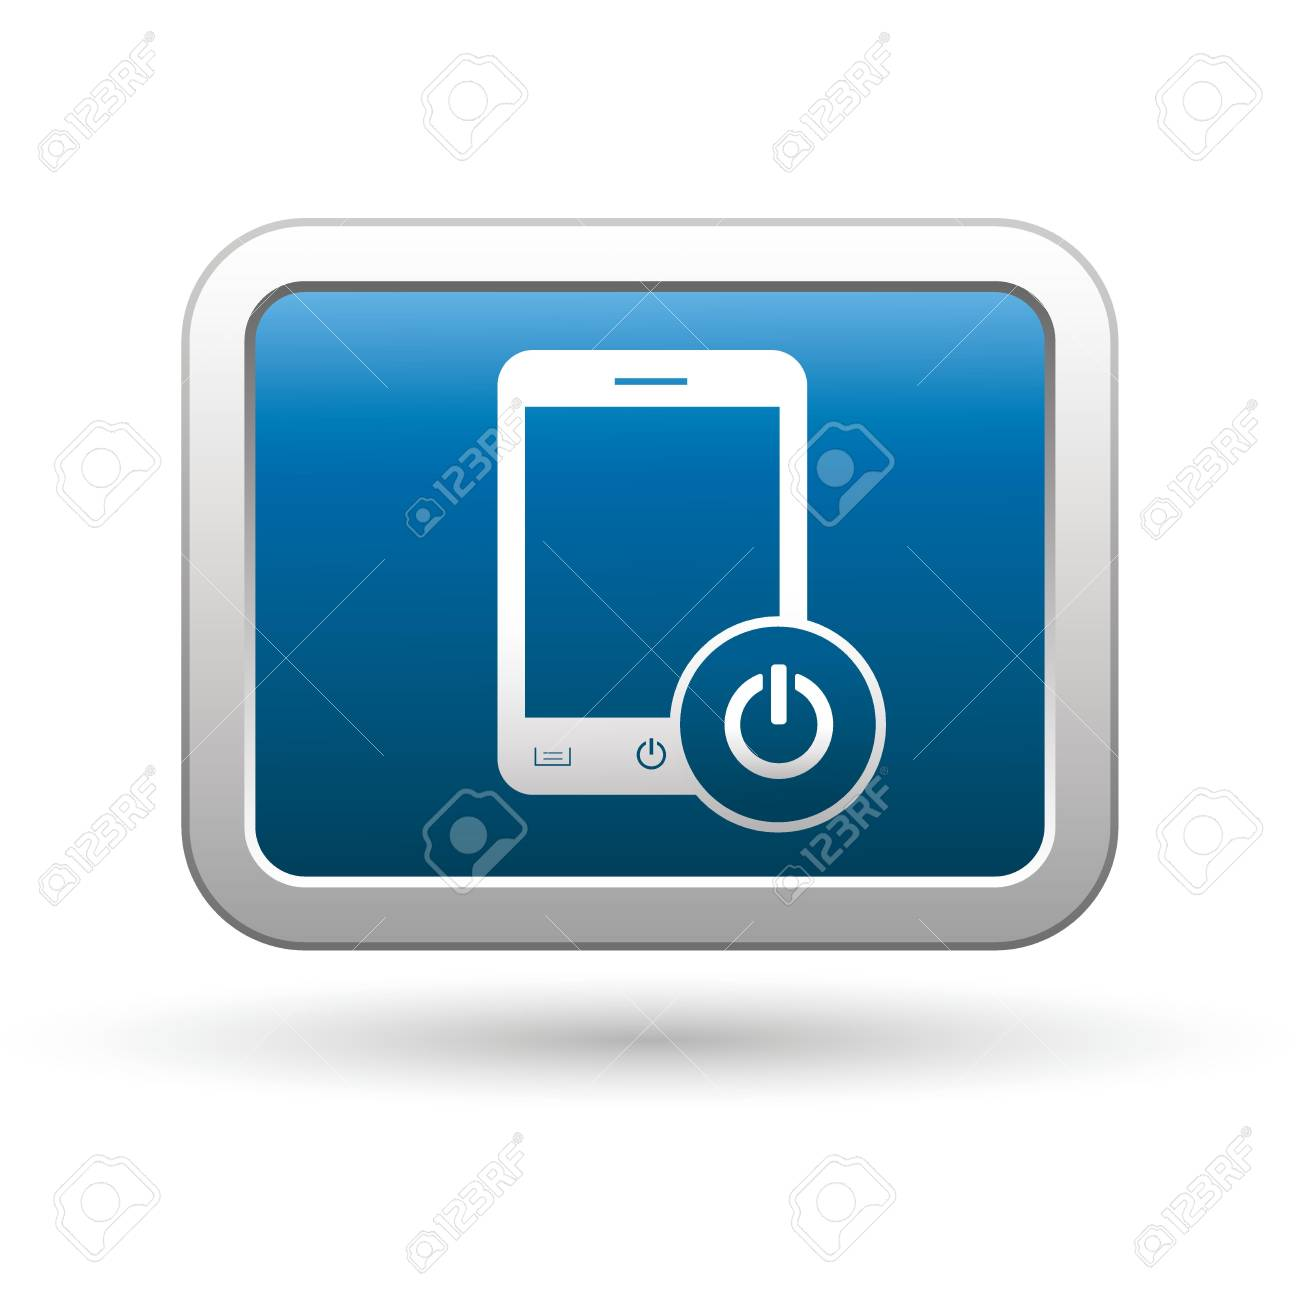 Phone with icon on the blue with silver rectangular button   illustration Stock Vector - 18699959